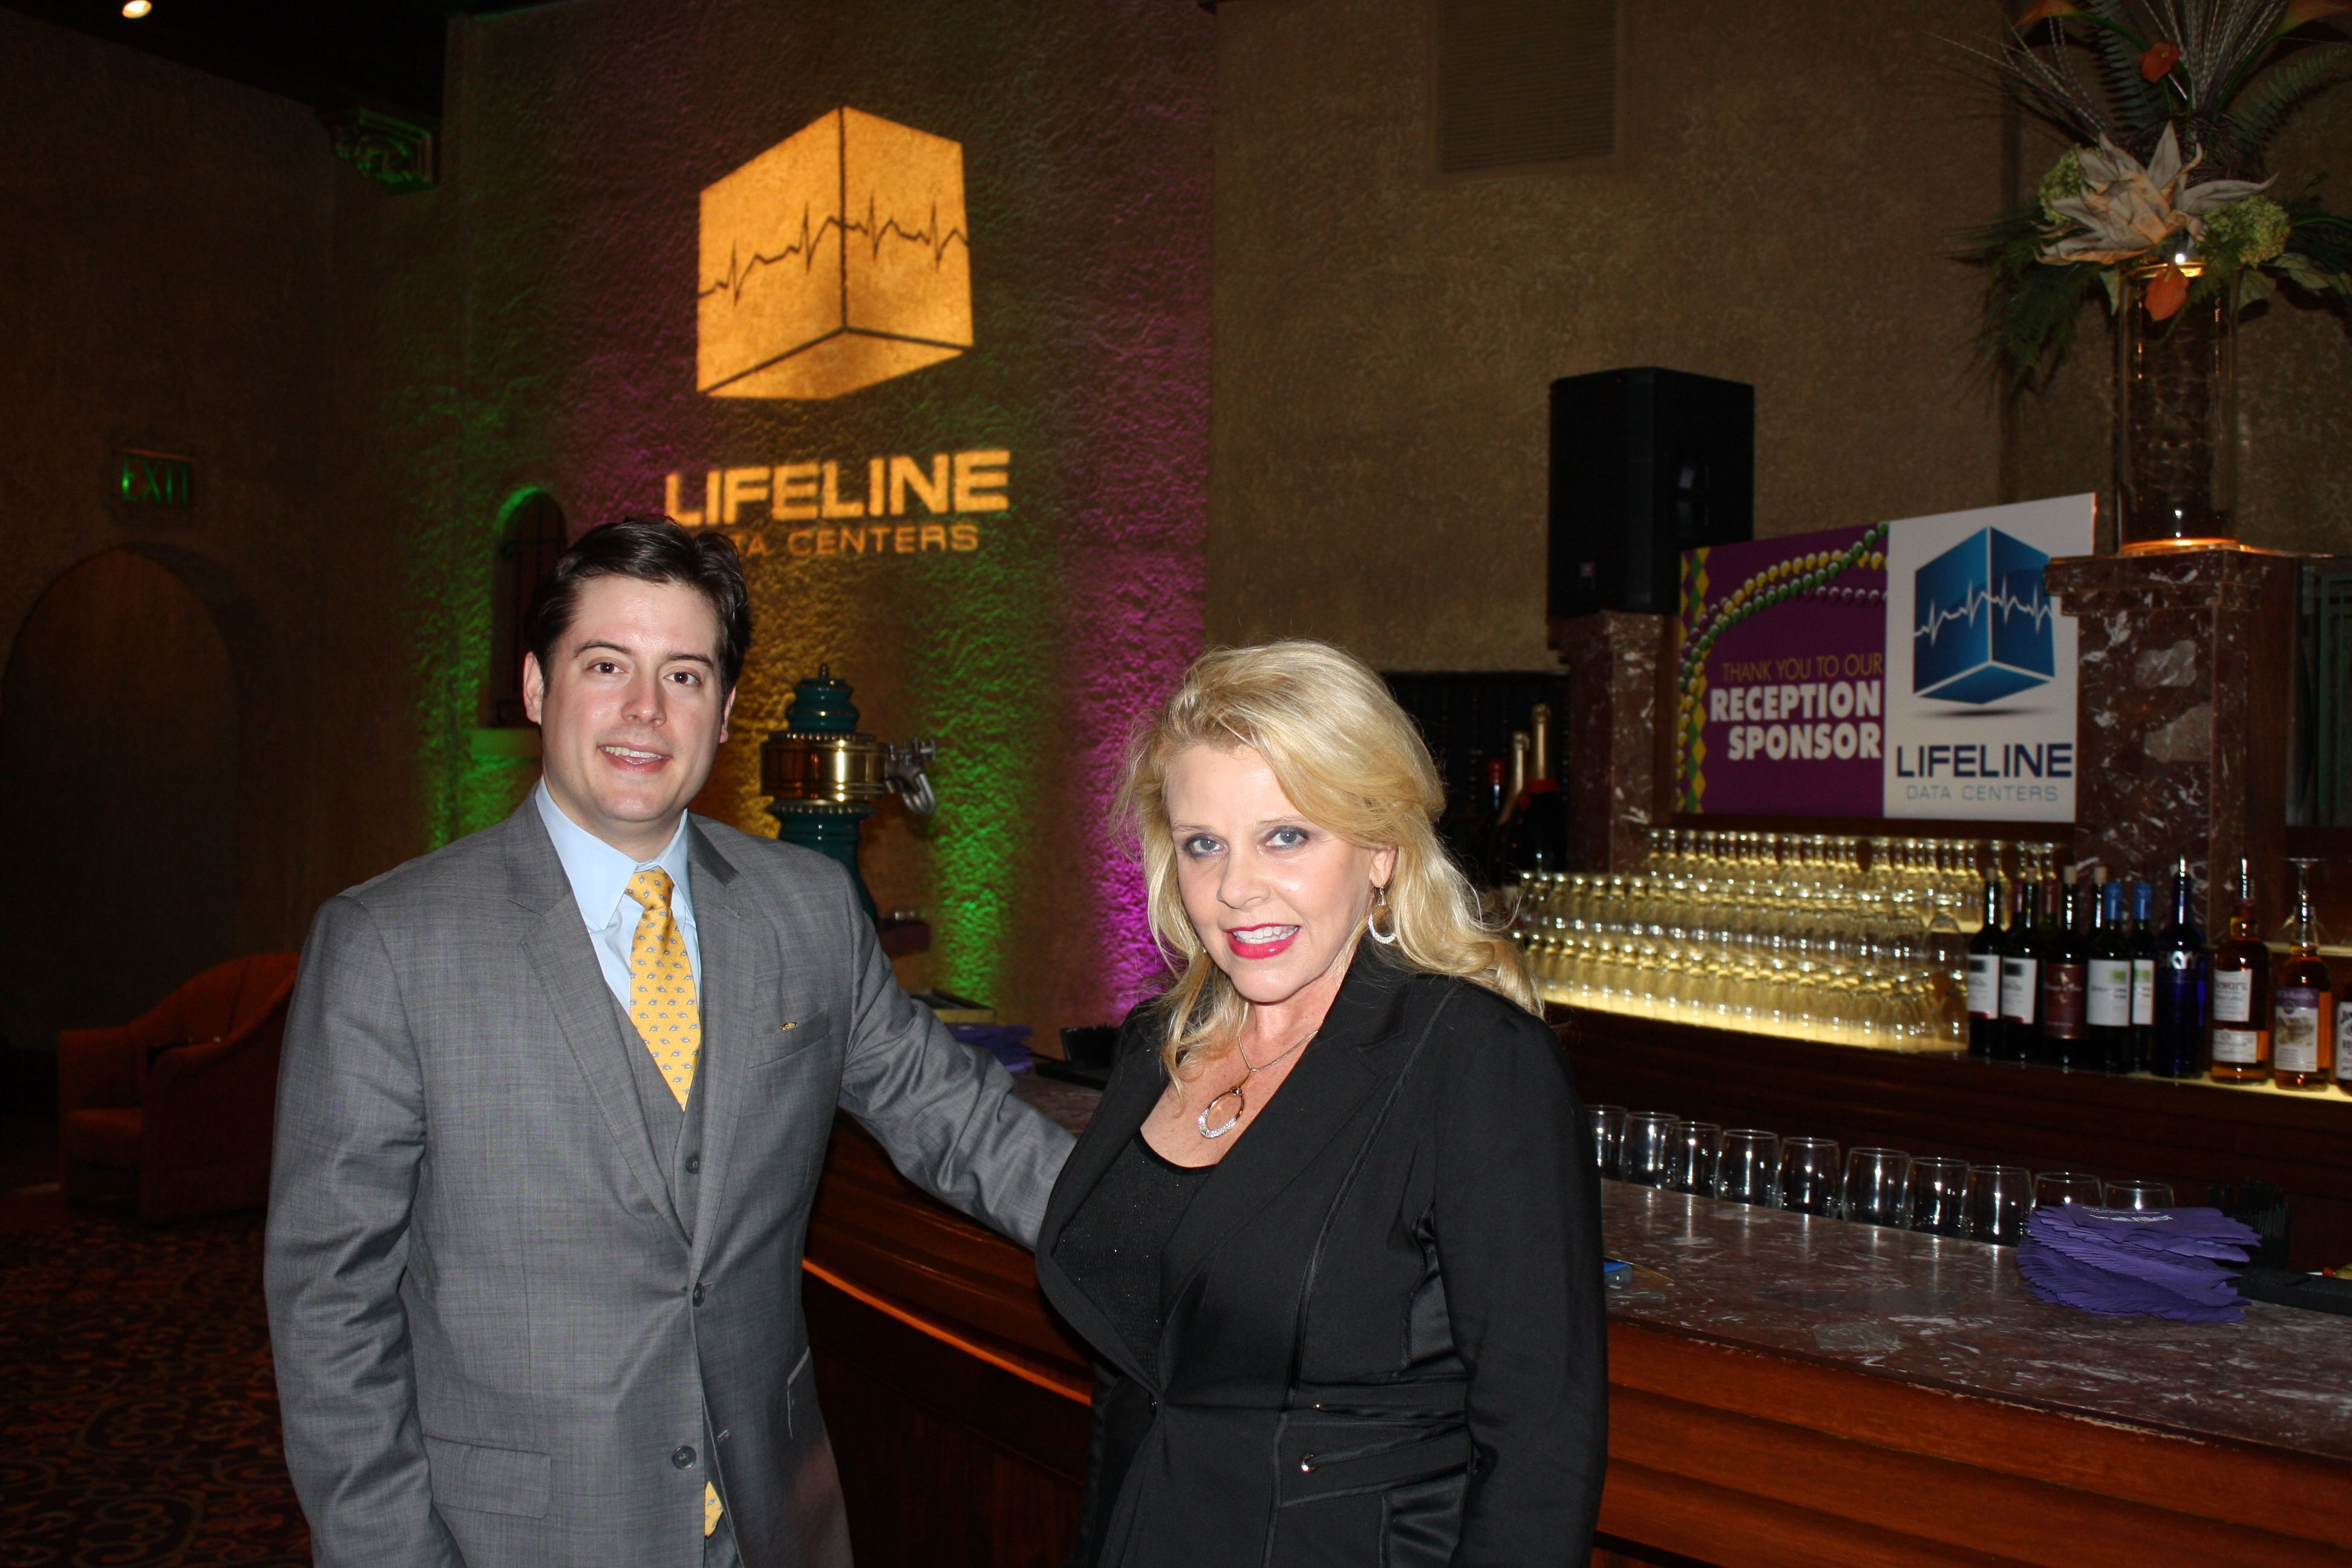 Nick and Dana in front of the Lifeline sponsored reception